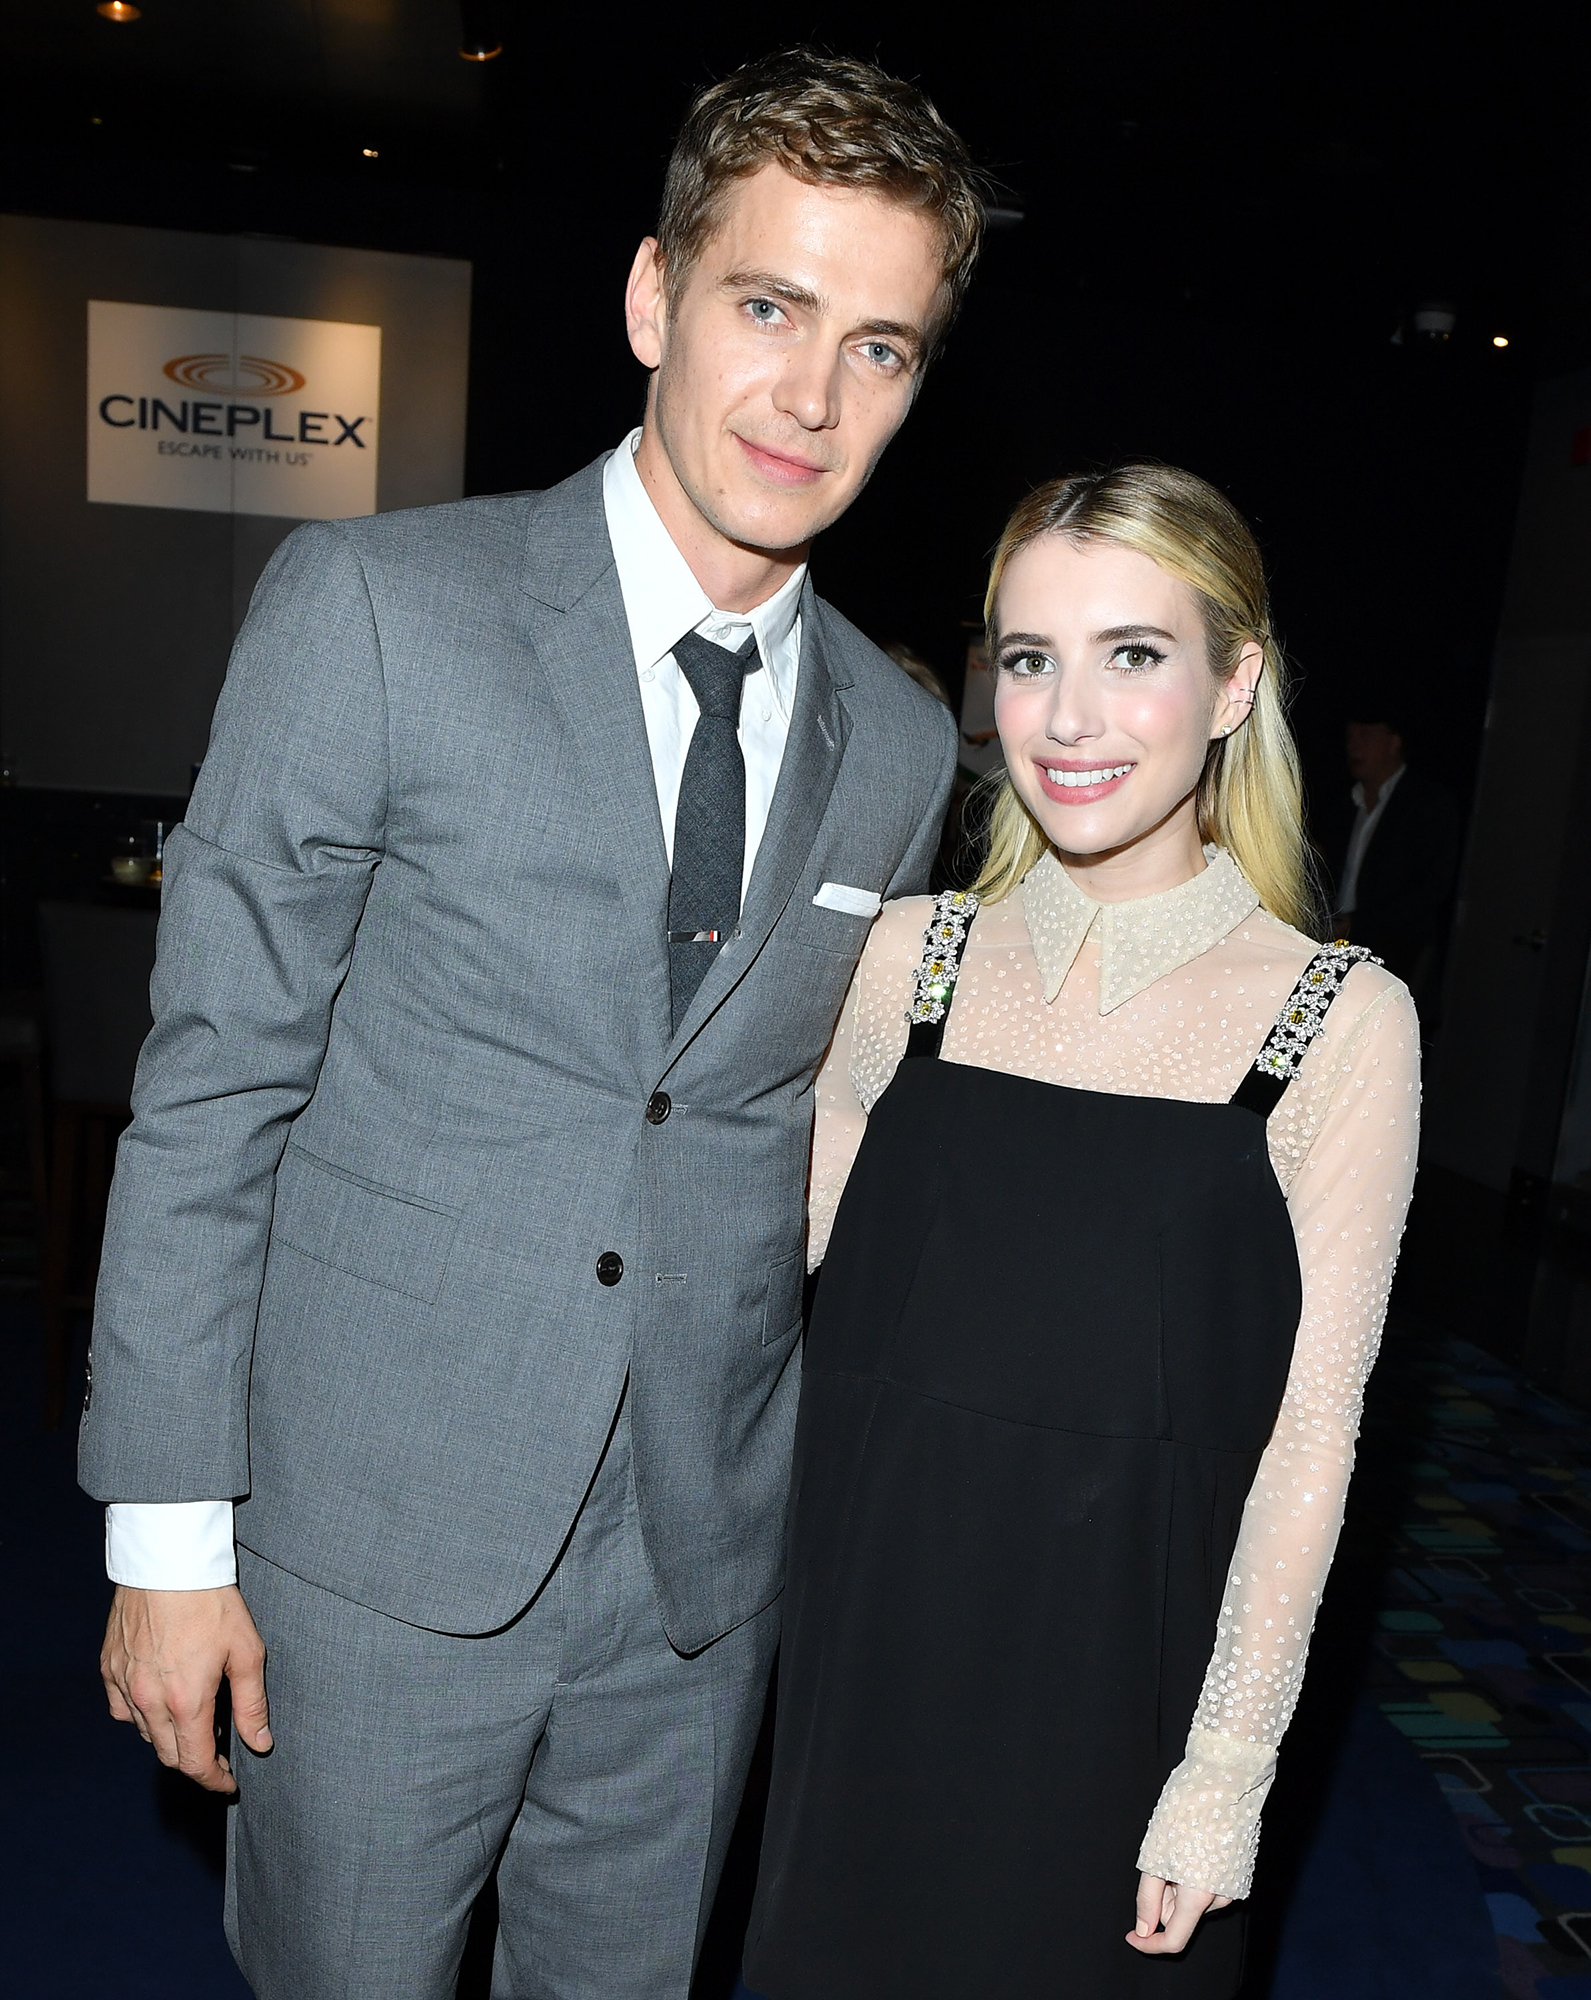 Emma Roberts' Dating History - Roberts made headlines in October 2017 after Rachel Bilson reportedly found text messages between the Scream Queens star and her then-boyfriend, leading The O.C. alum to believe Roberts and Christensen had an inappropriate relationship. ( Us broke the news in September 2017 that Bilson and Christensen had split.)